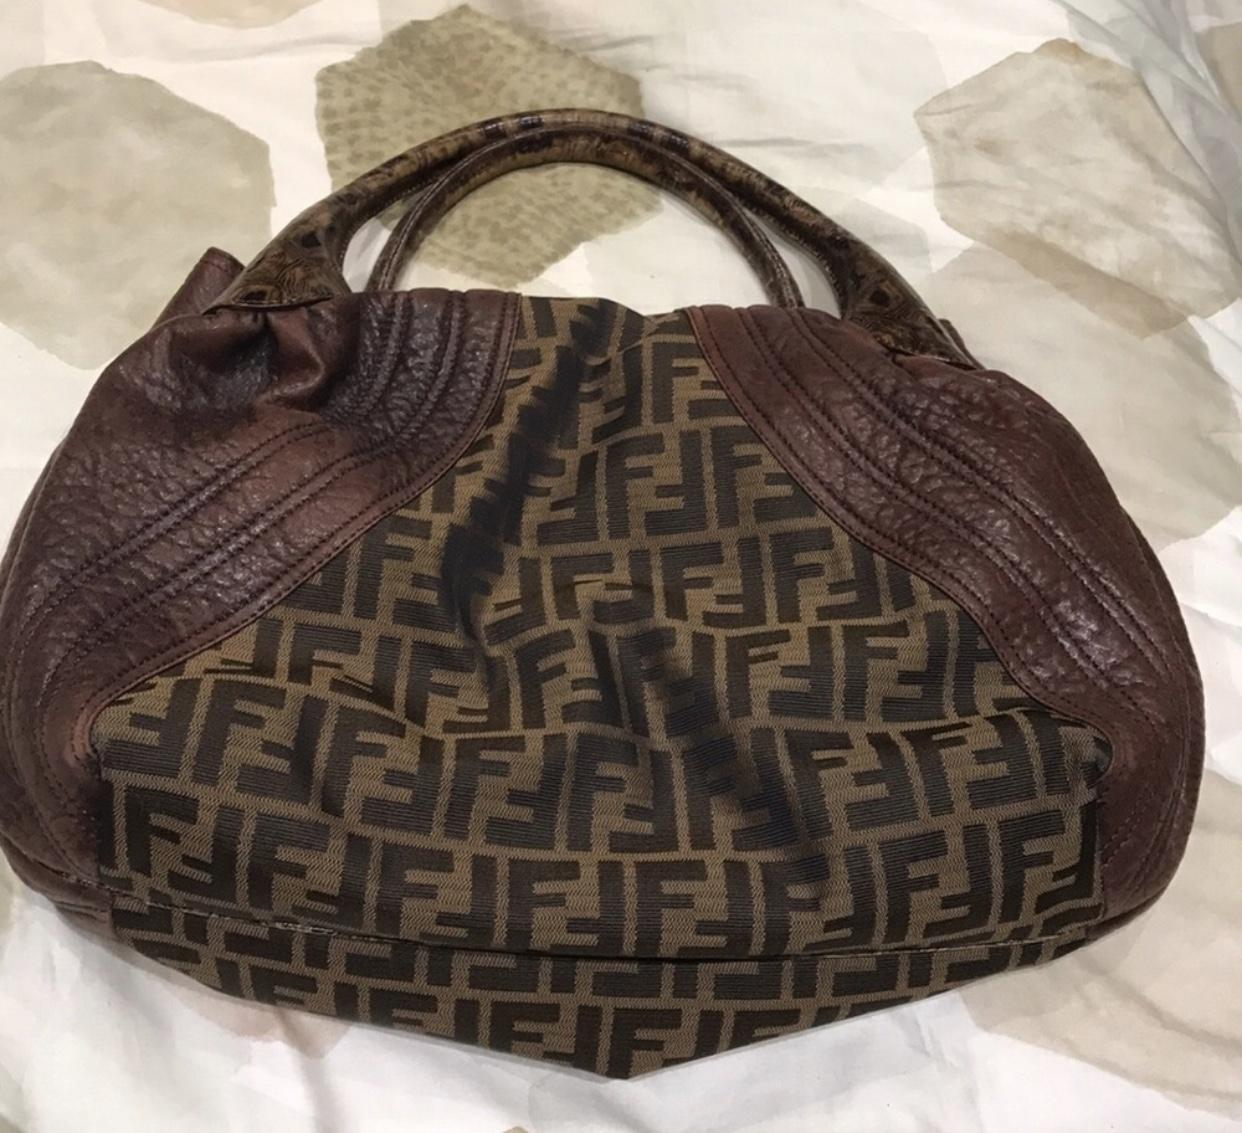 9a9d9517ad 76056 5660b; clearance fendi and cloth labeled side handbag brown leather  shoulder bag 4d94a 2e893